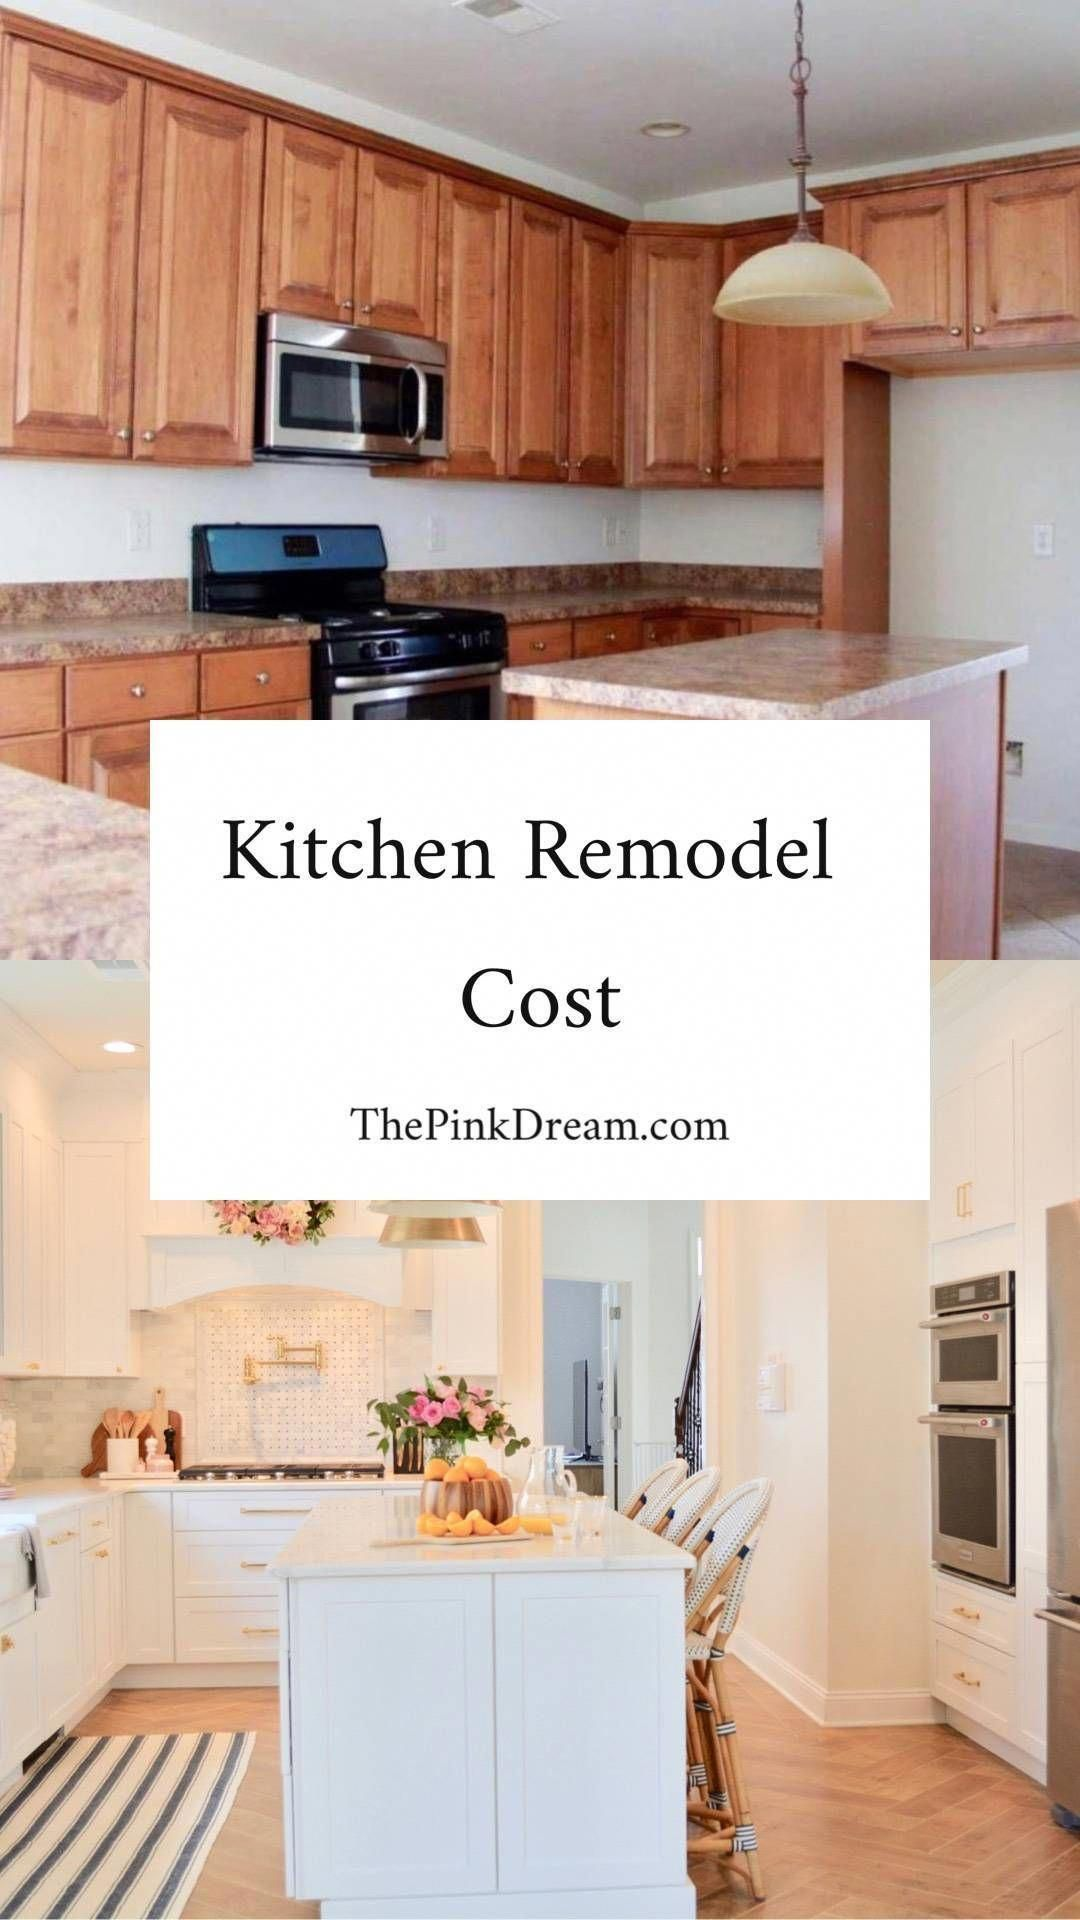 Must Have Home Renovation Examples In 2020 Kitchen Renovation Cost Kitchen Remodel Small Kitchen Renovation